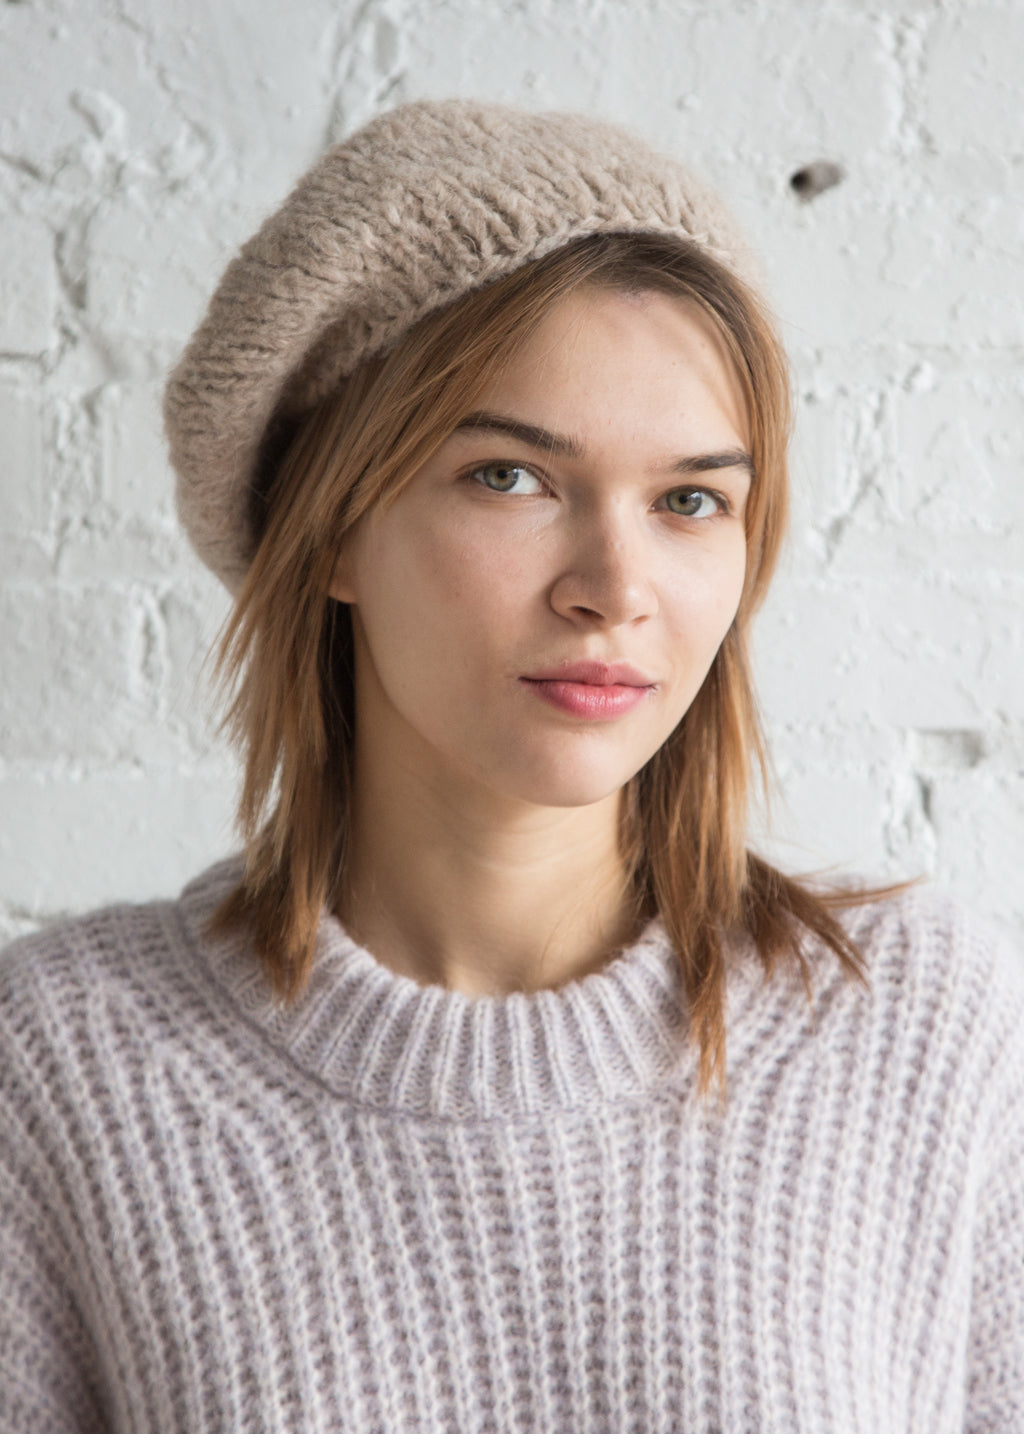 Clyde Mohair Beret Oatmeal - SOLD OUT